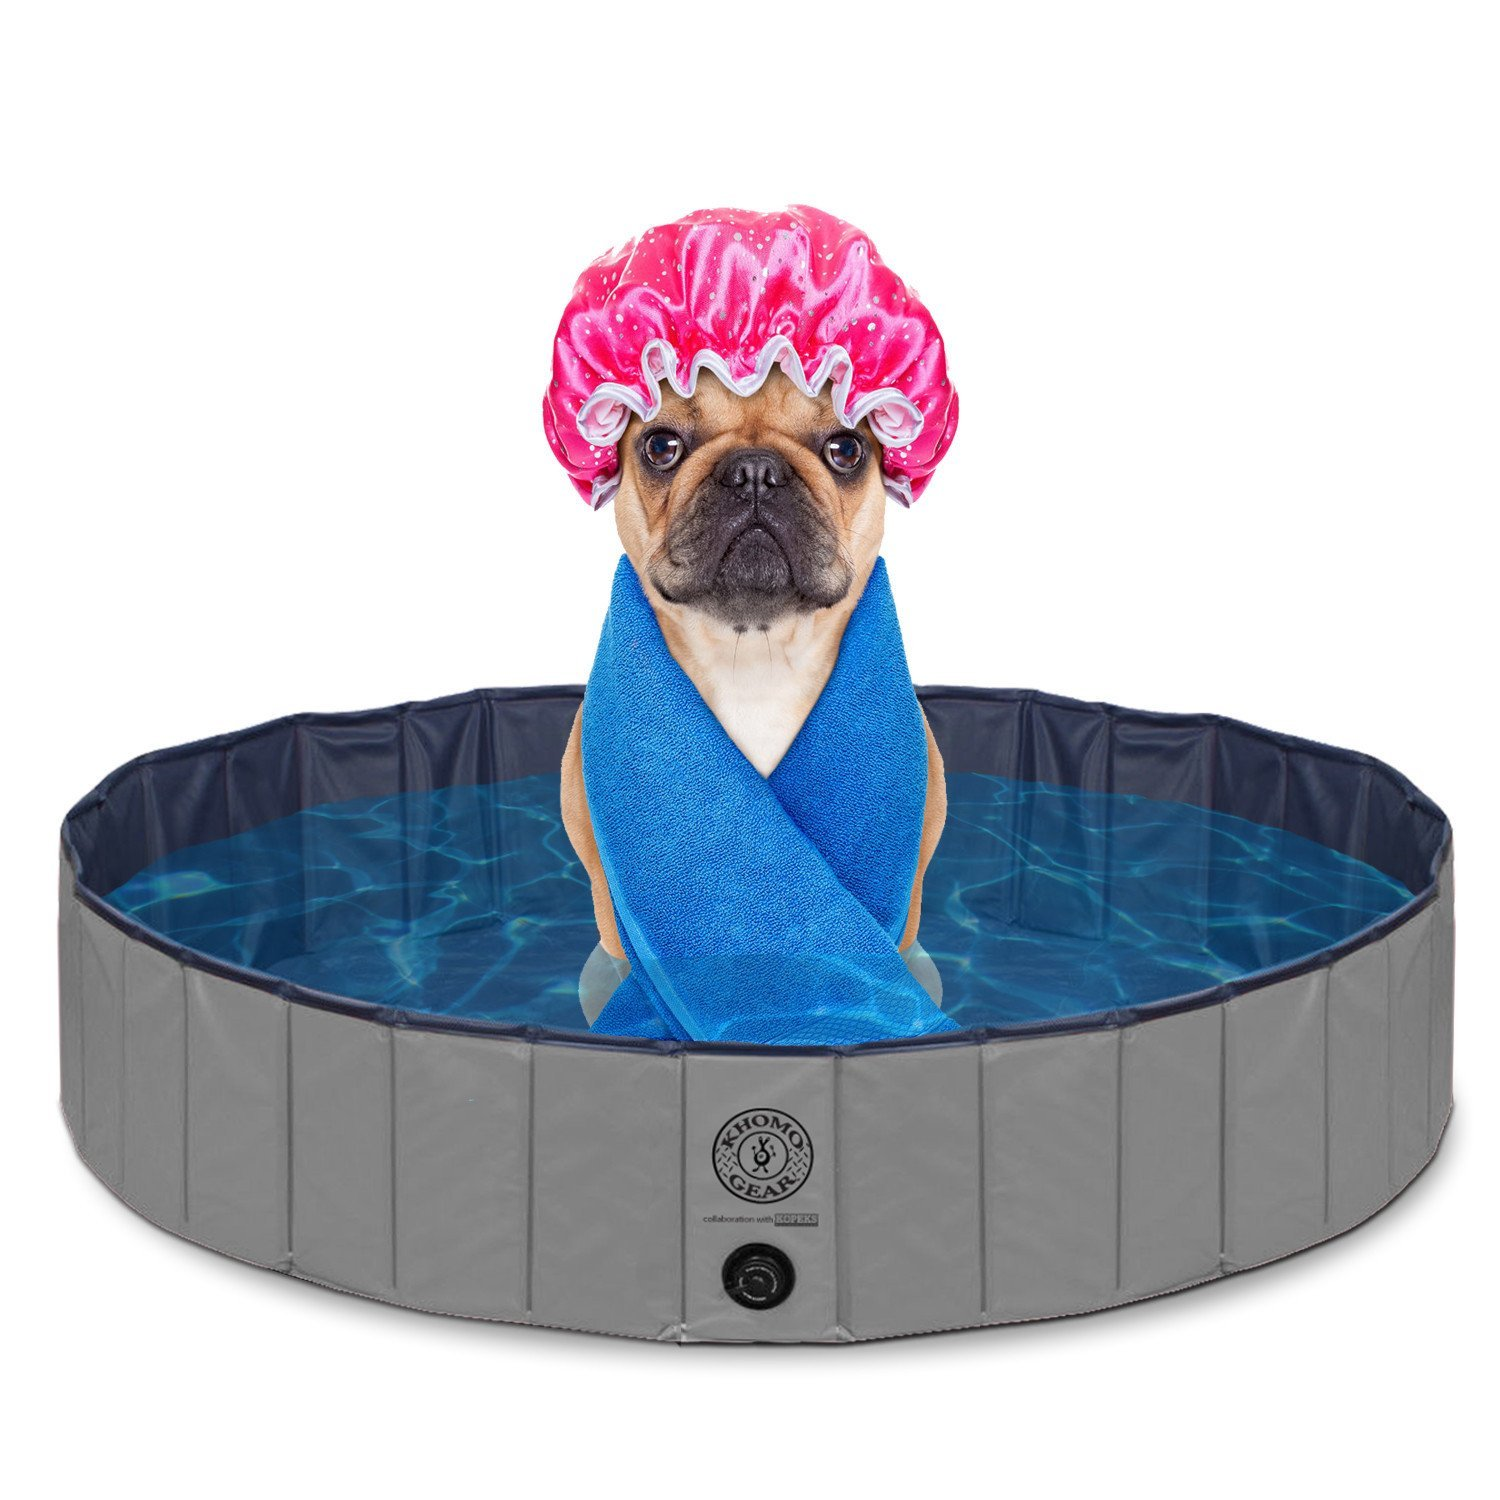 Outdoor Swimming Pool Bathing Tub - Portable Foldable - Ideal for Pets - Large 47'' x 12''